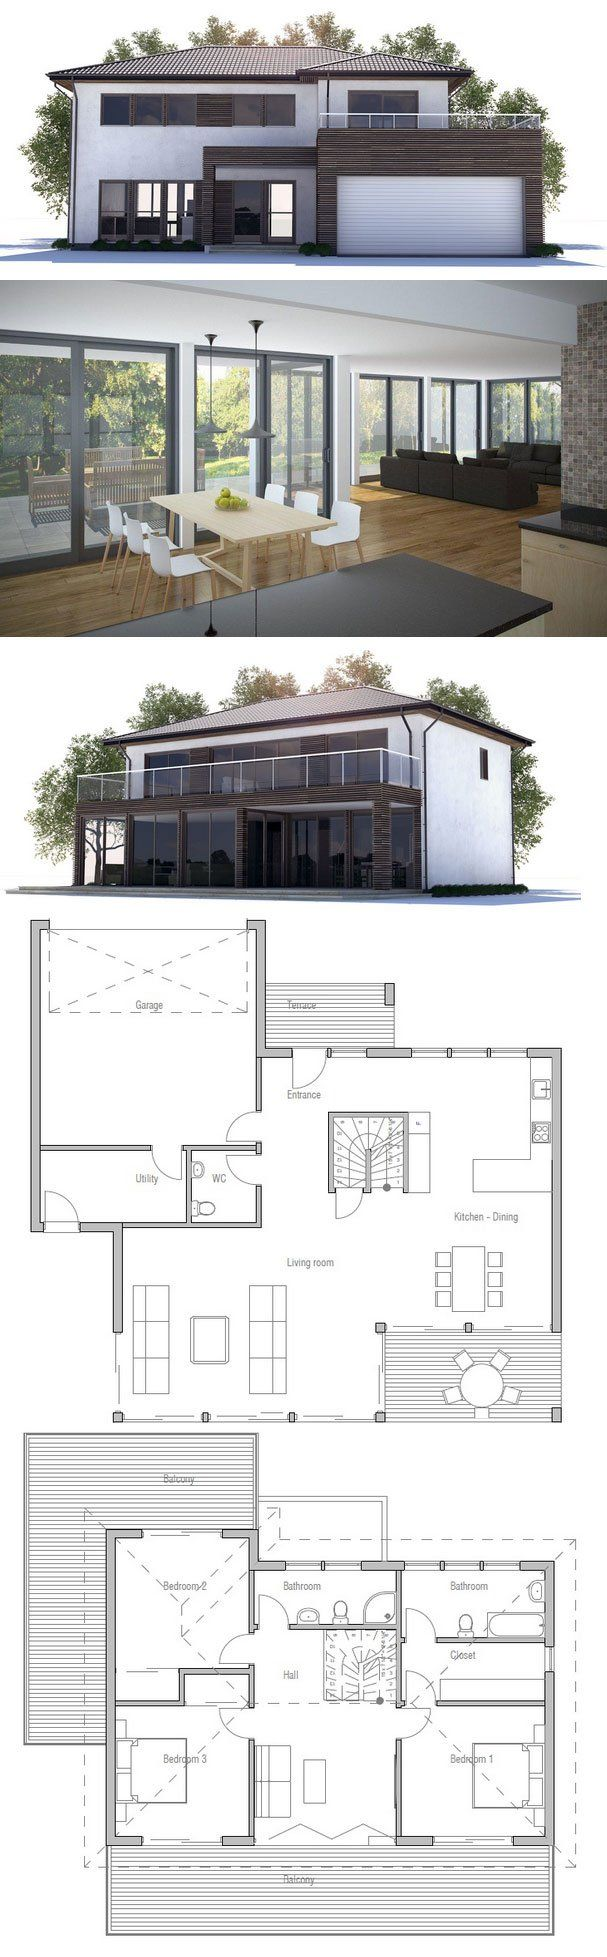 House plan from love this floor plan i 39 d for Concept home com